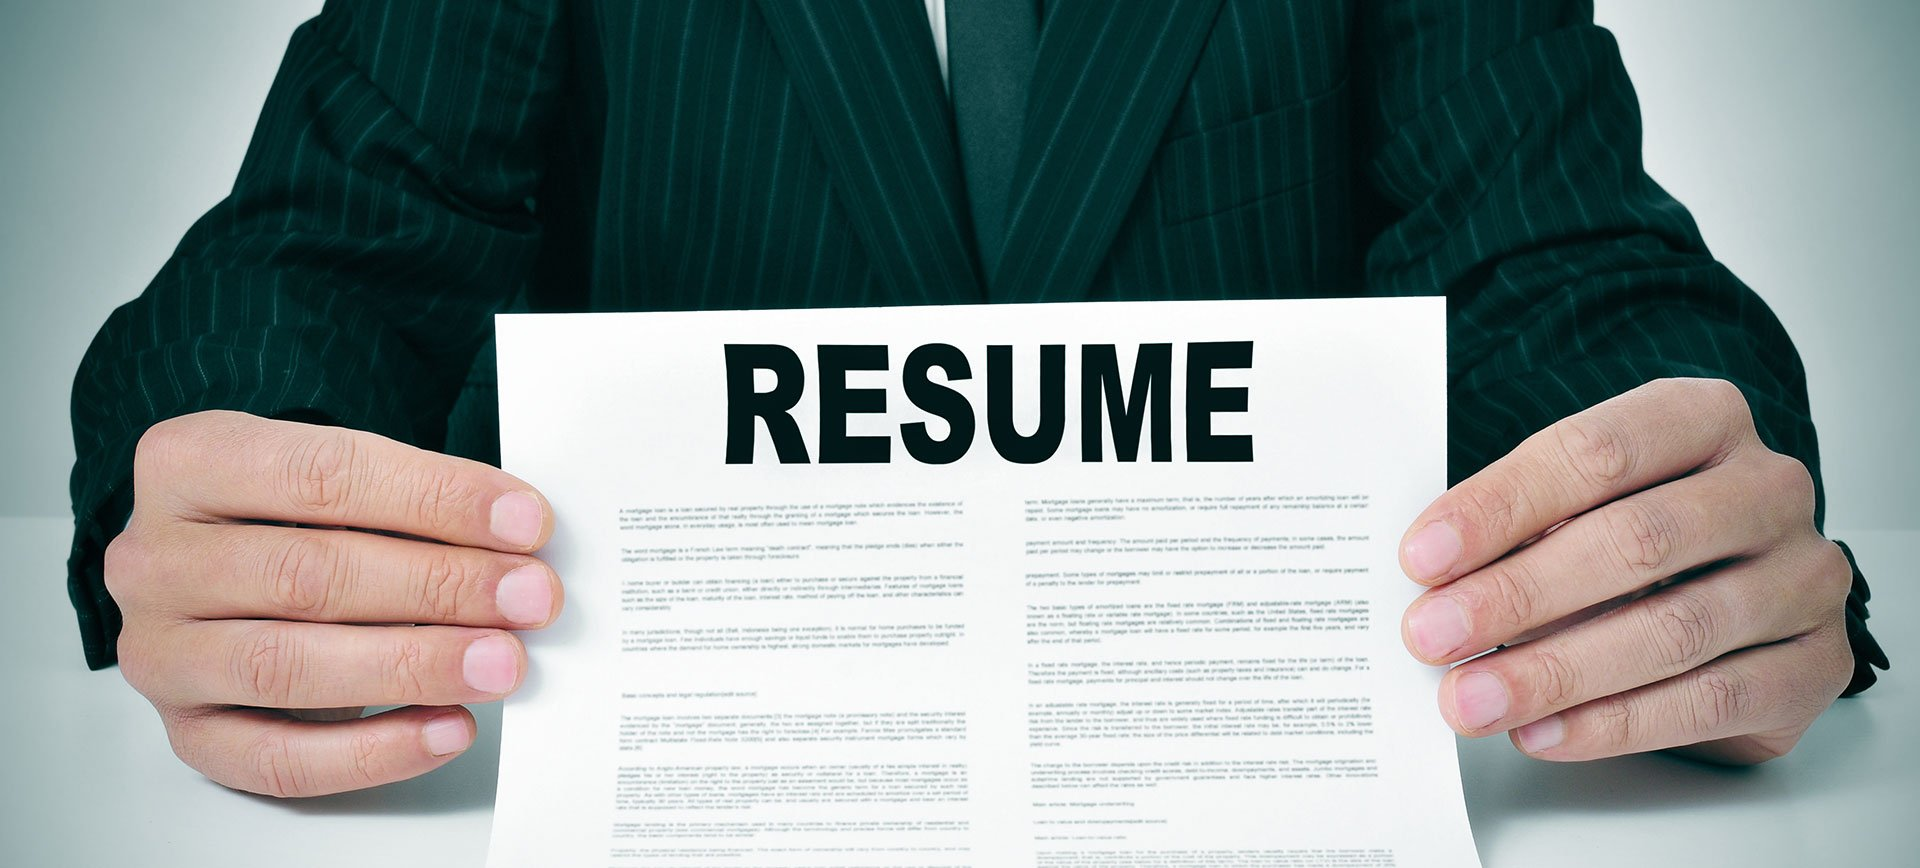 6 Things to Make Sure Your Resume Gets Read